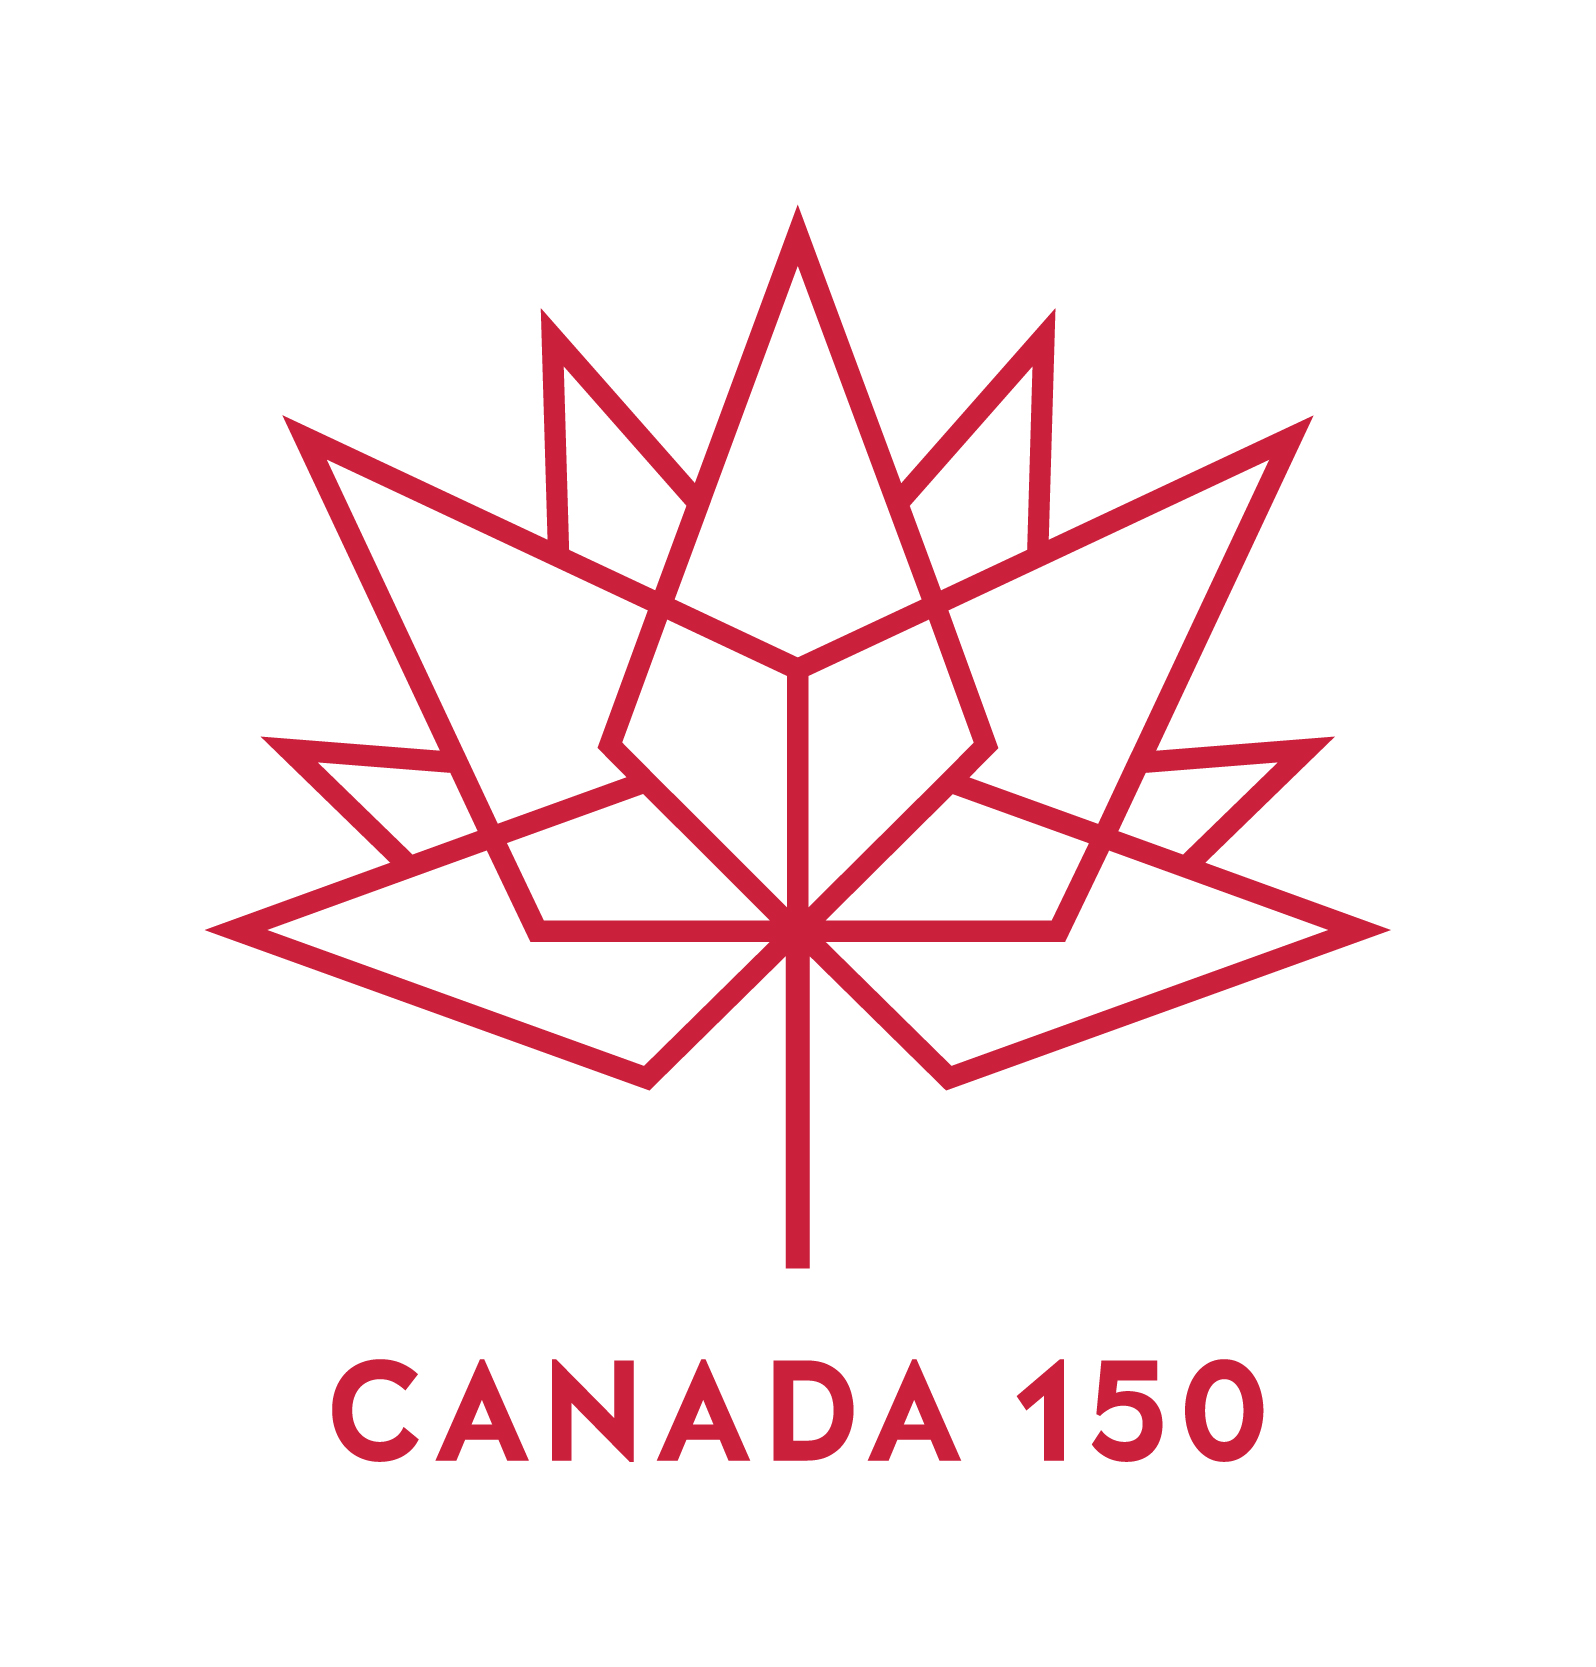 WARKENTIN CELEBRATES THE 150TH CANADA DAY